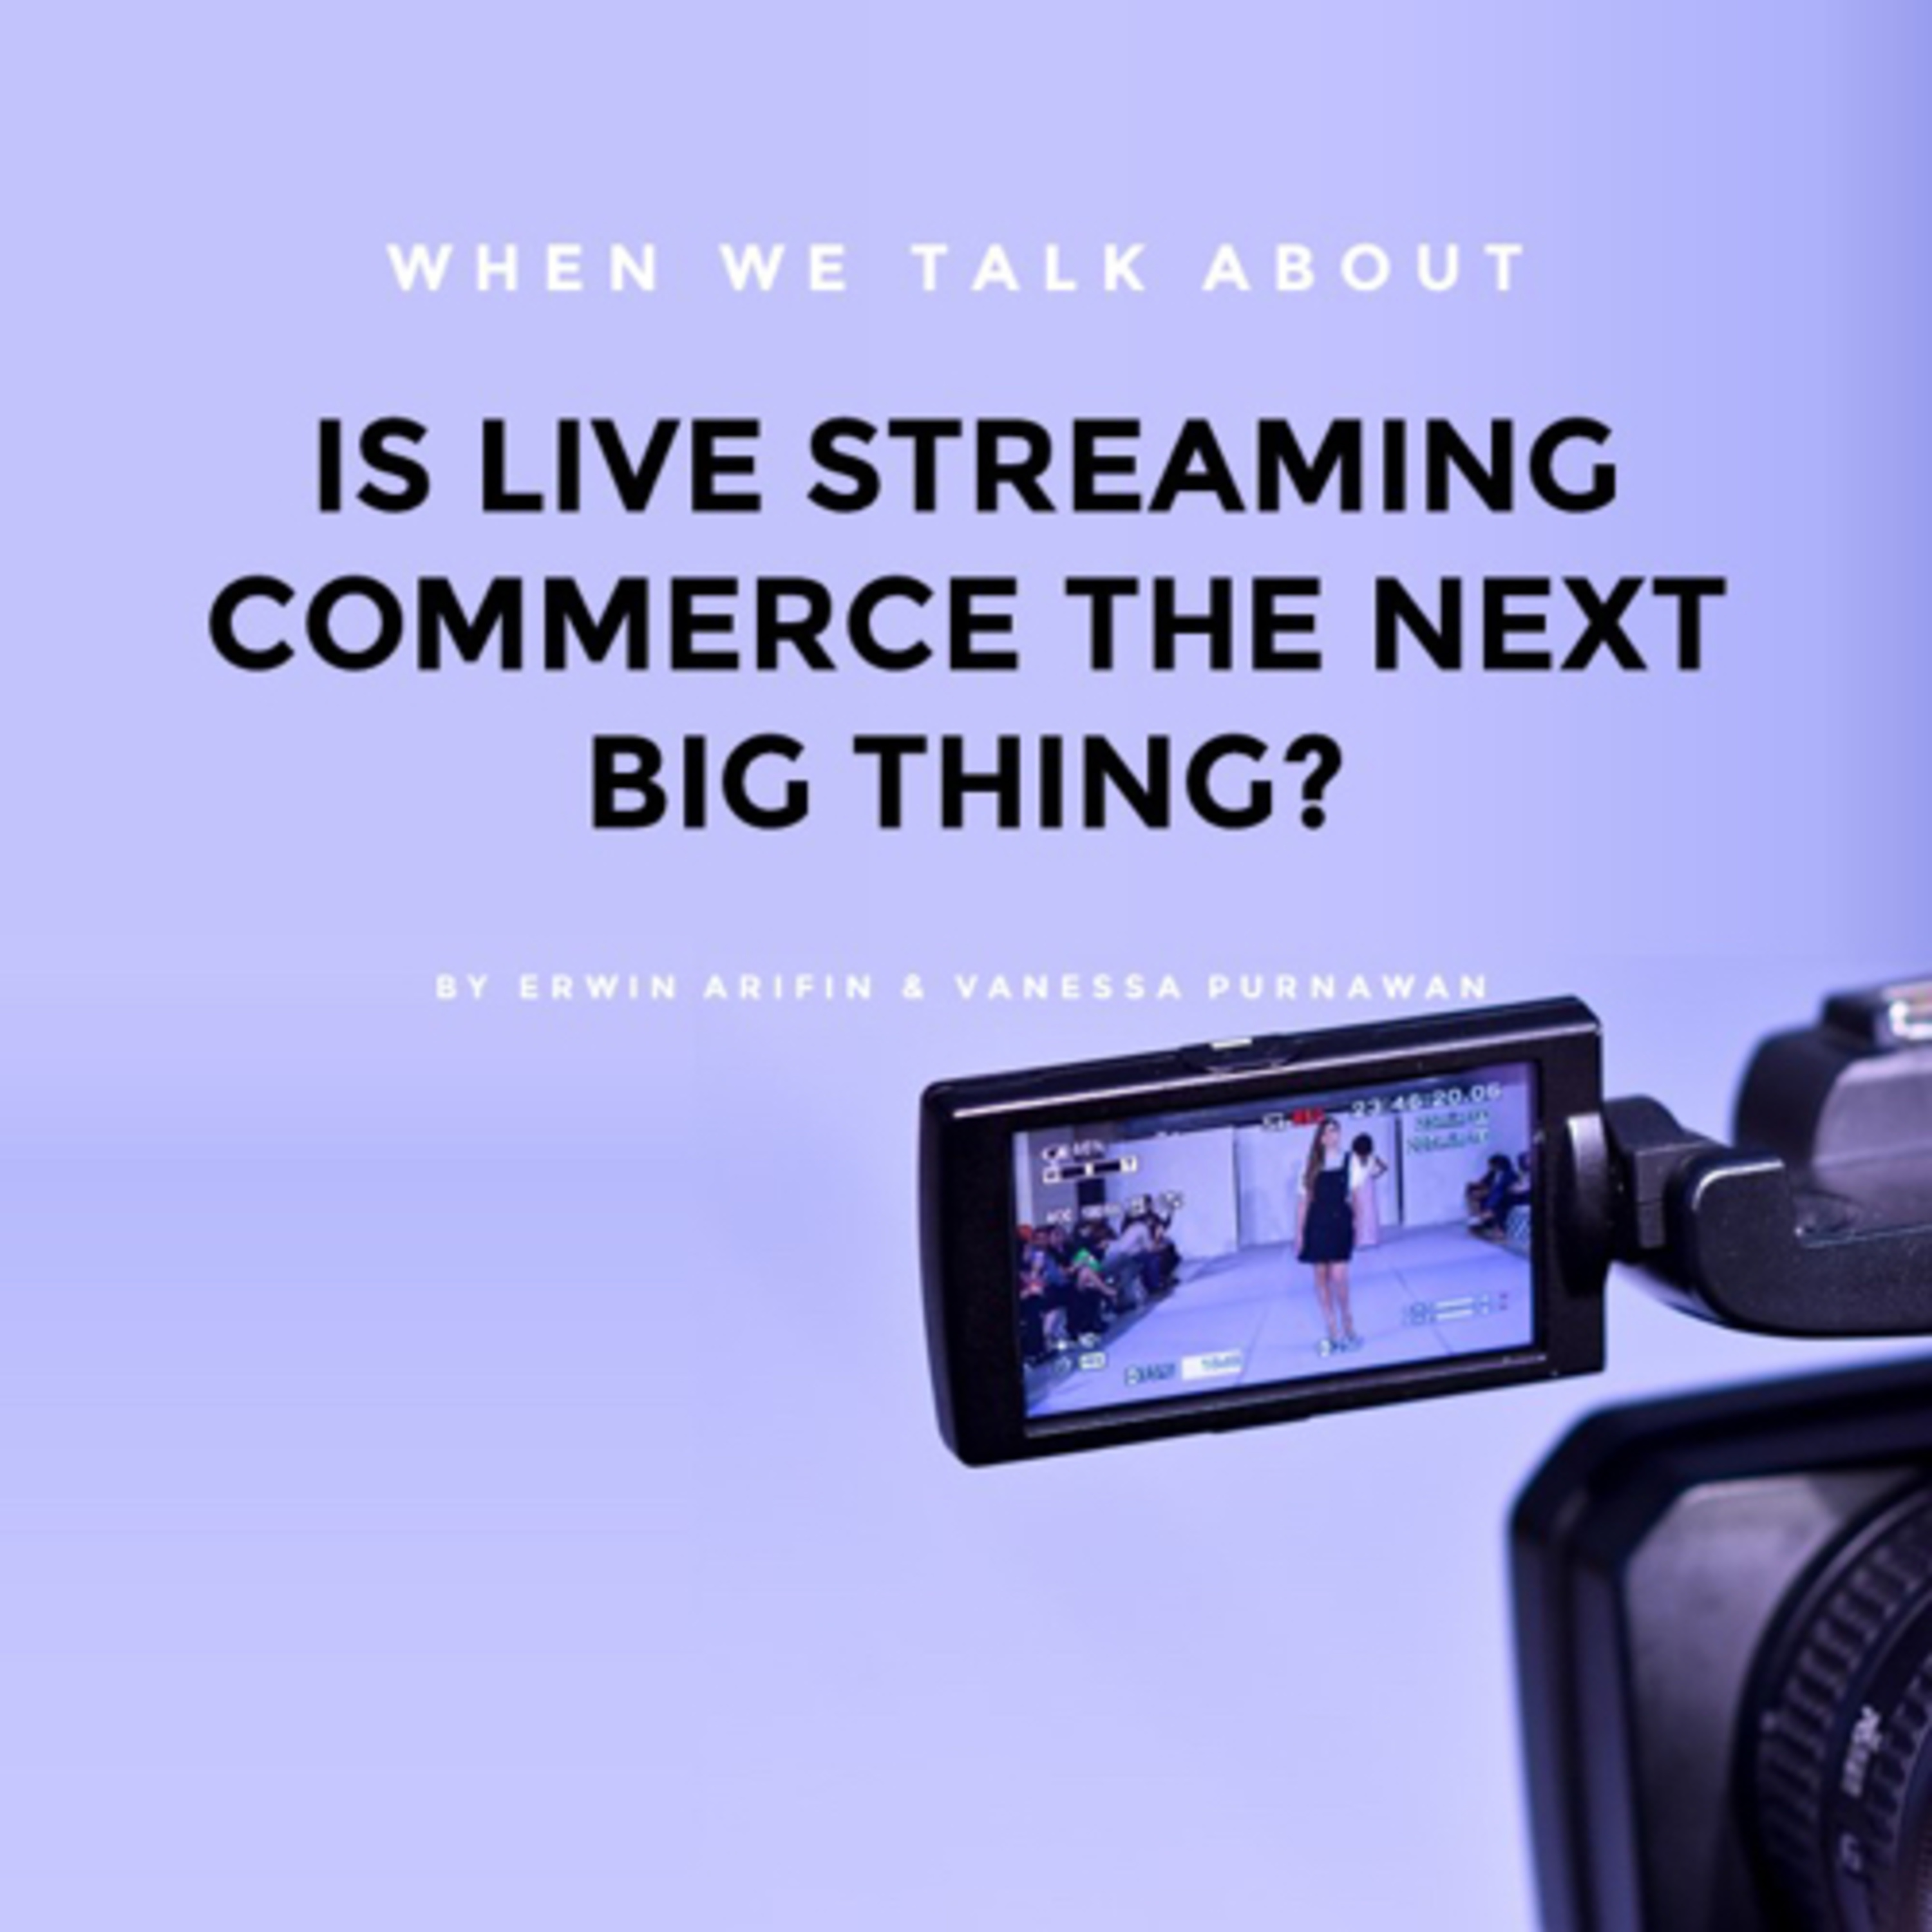 Is live streaming commerce the next big thing?